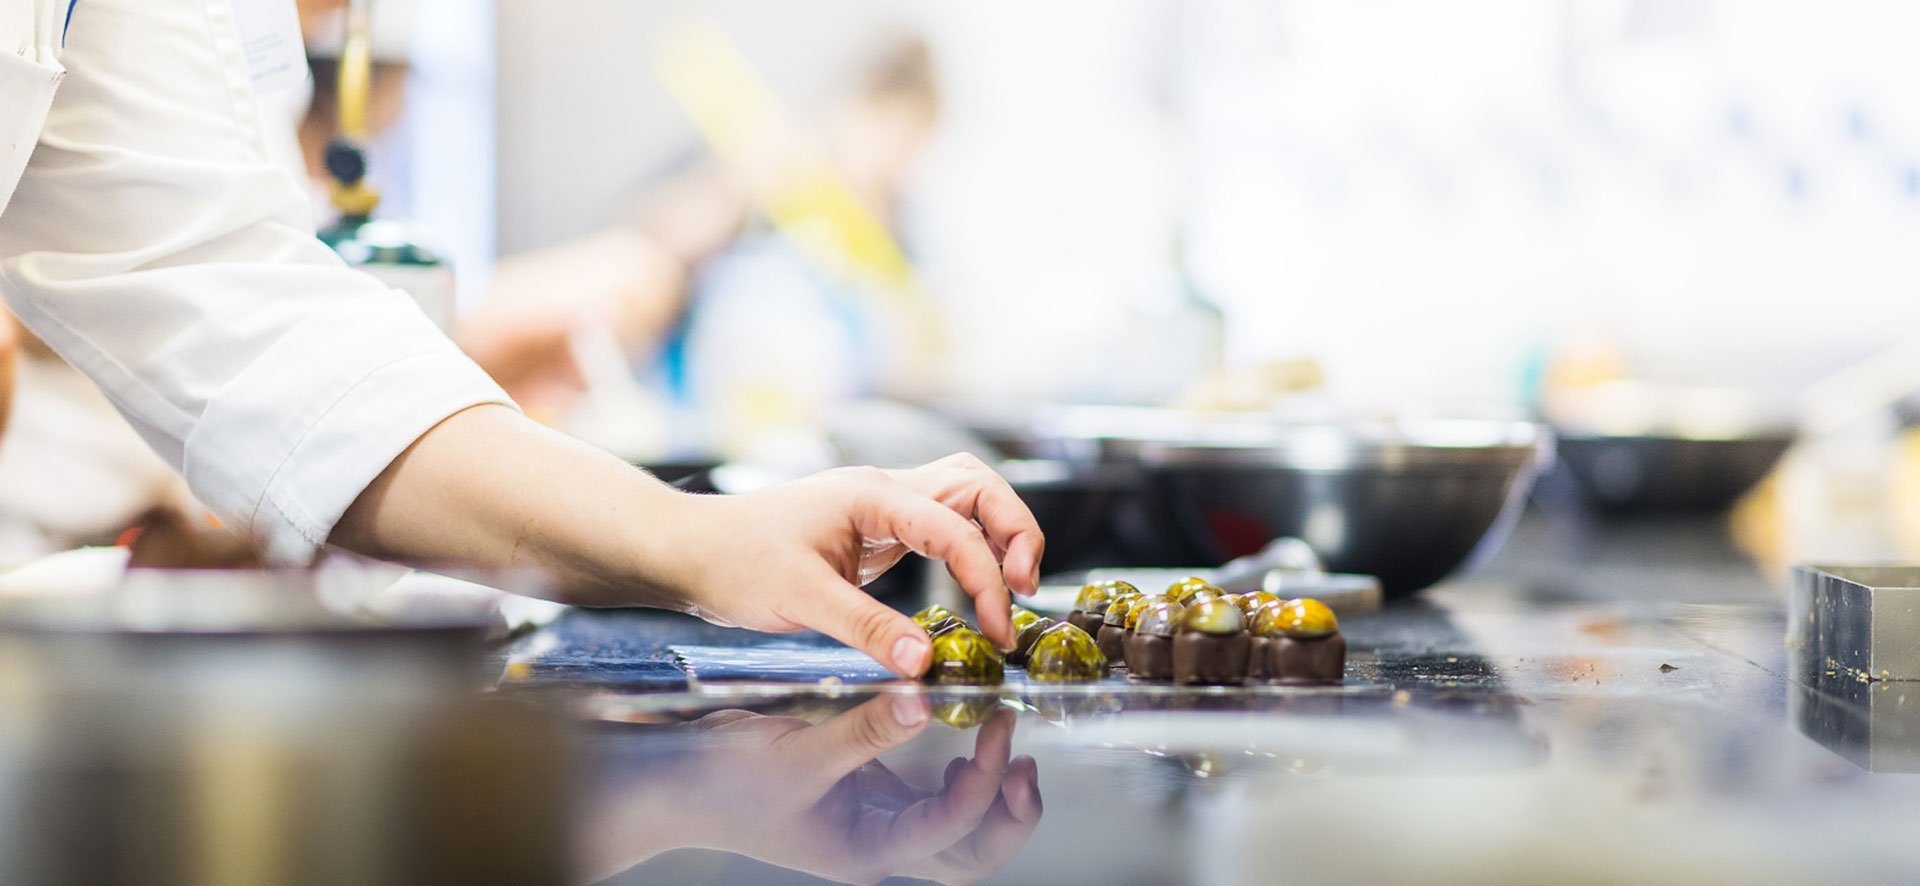 chocolate making at le cordon bleu london pastry school